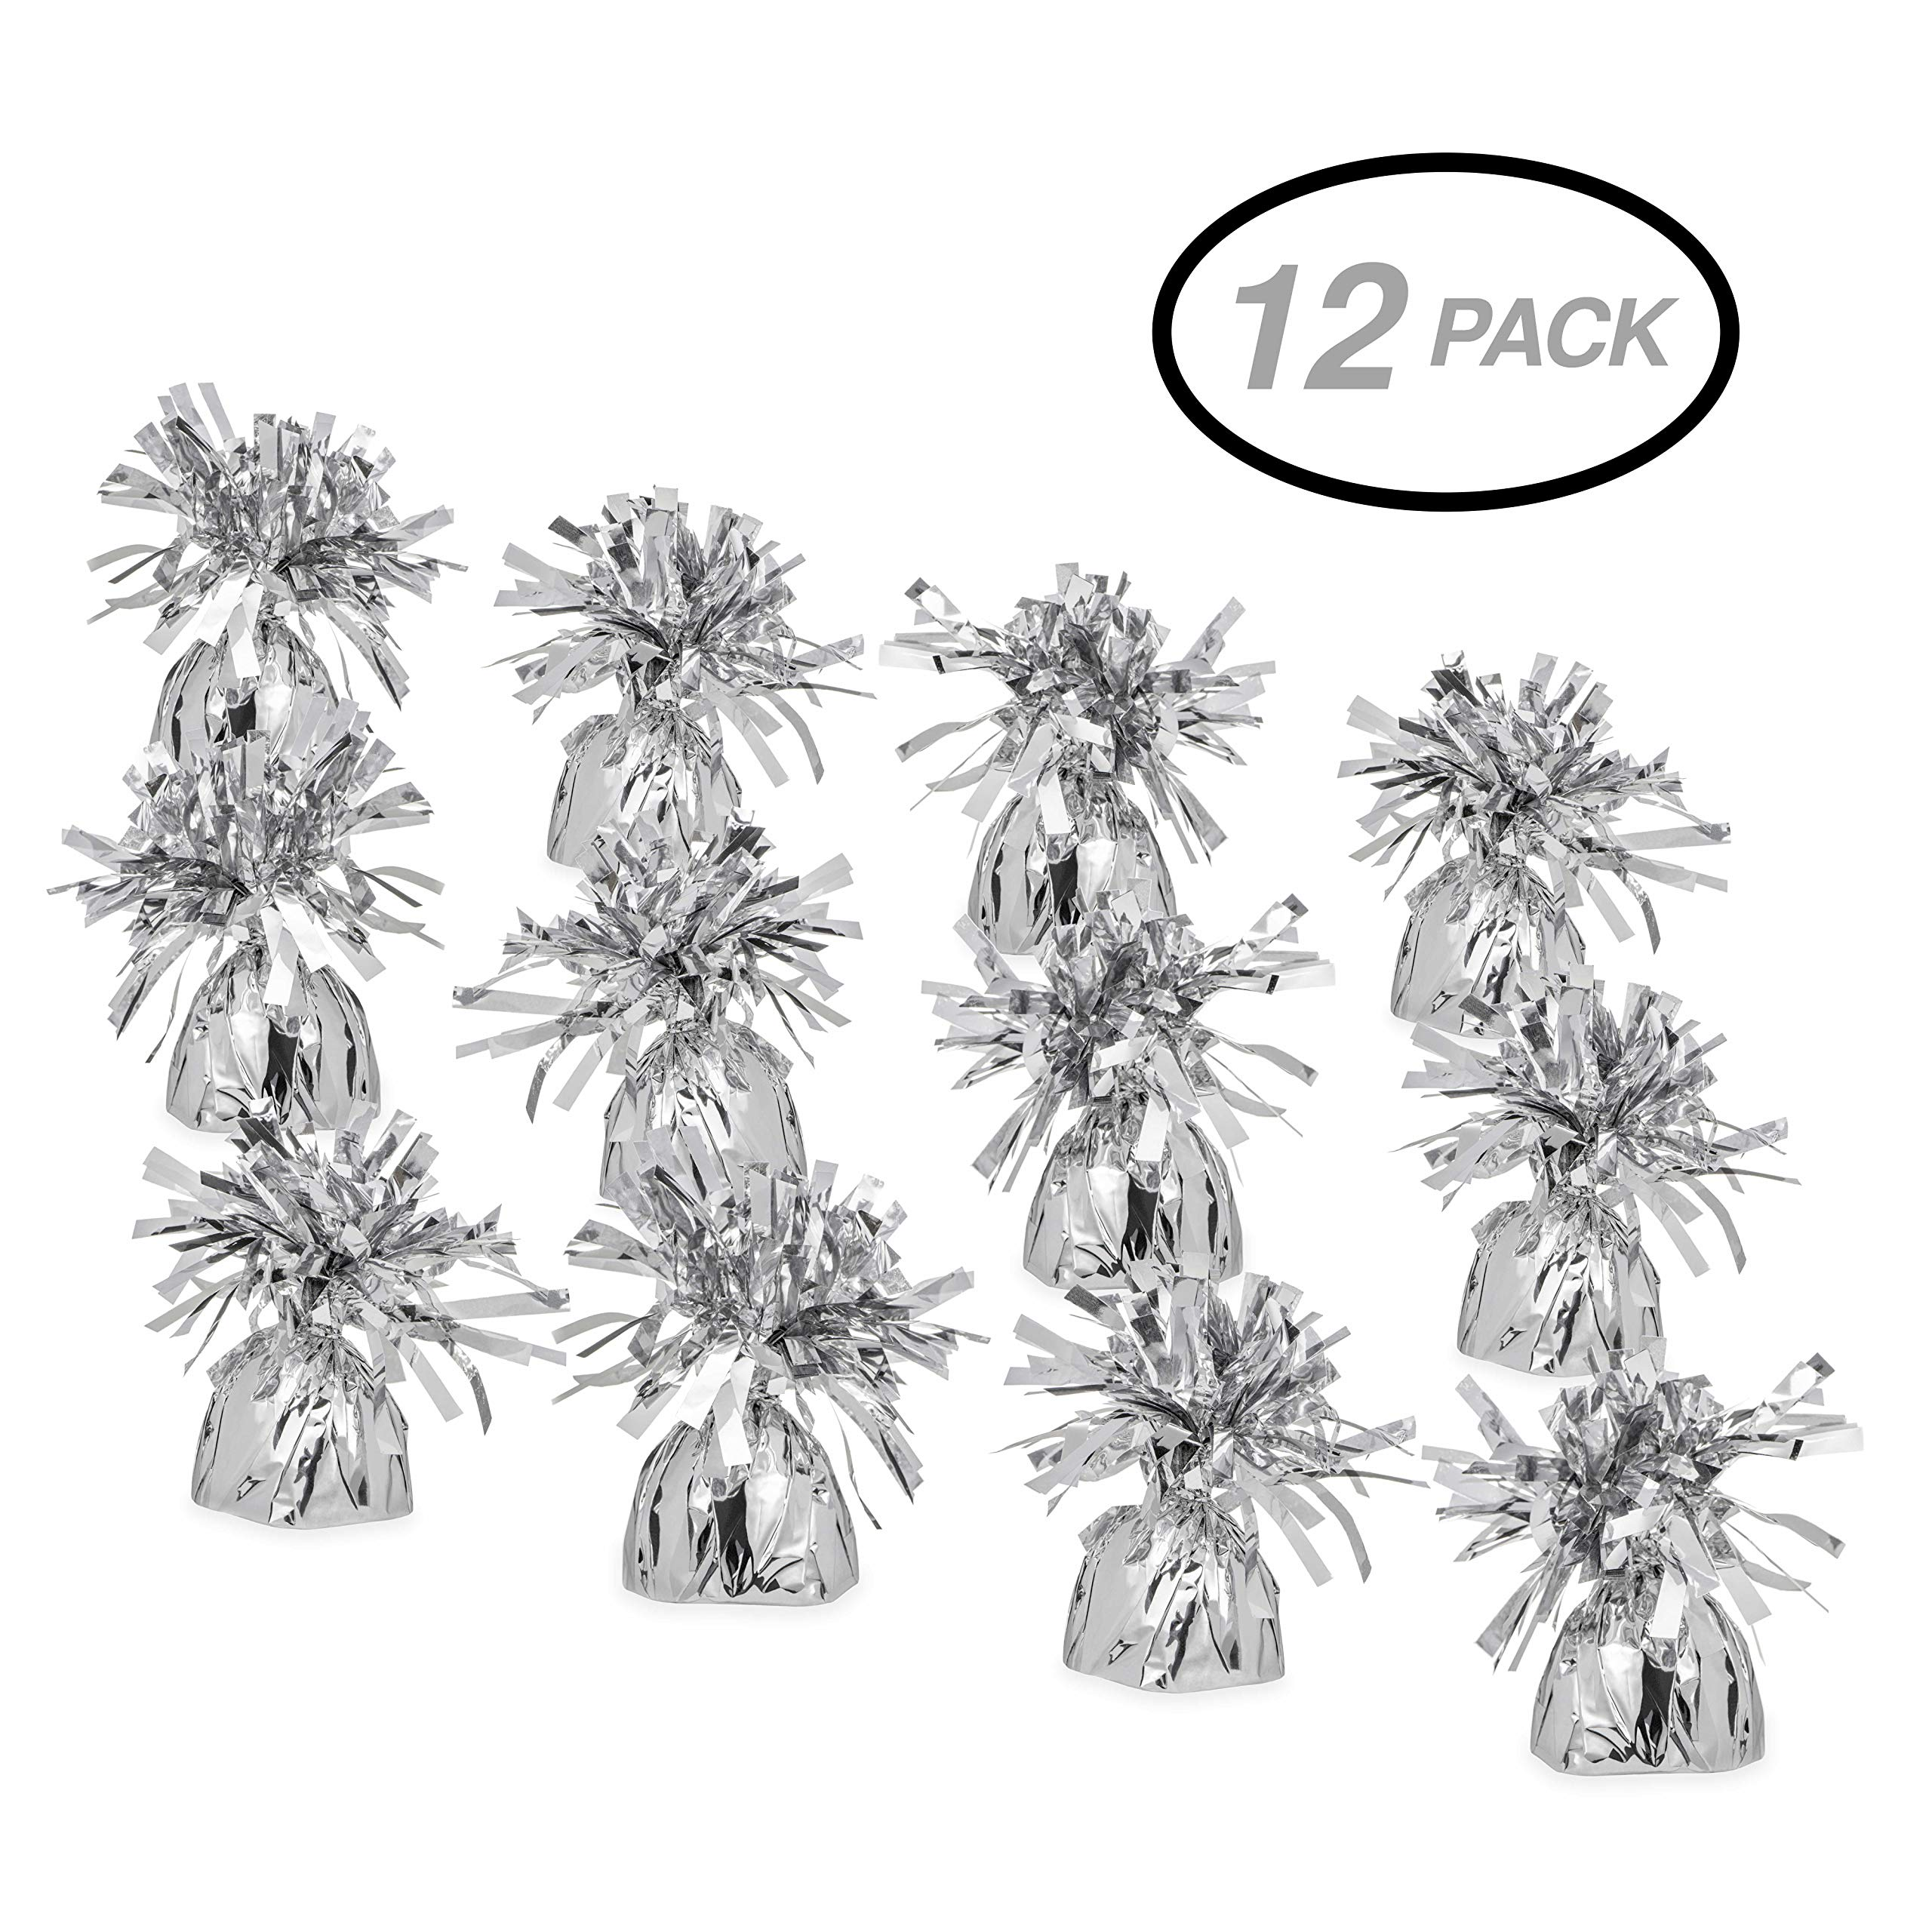 SRENTA 5.5'' Silver Metallic Wrapped Balloon Weights for Birthday Party Decoration, Pack Of 12